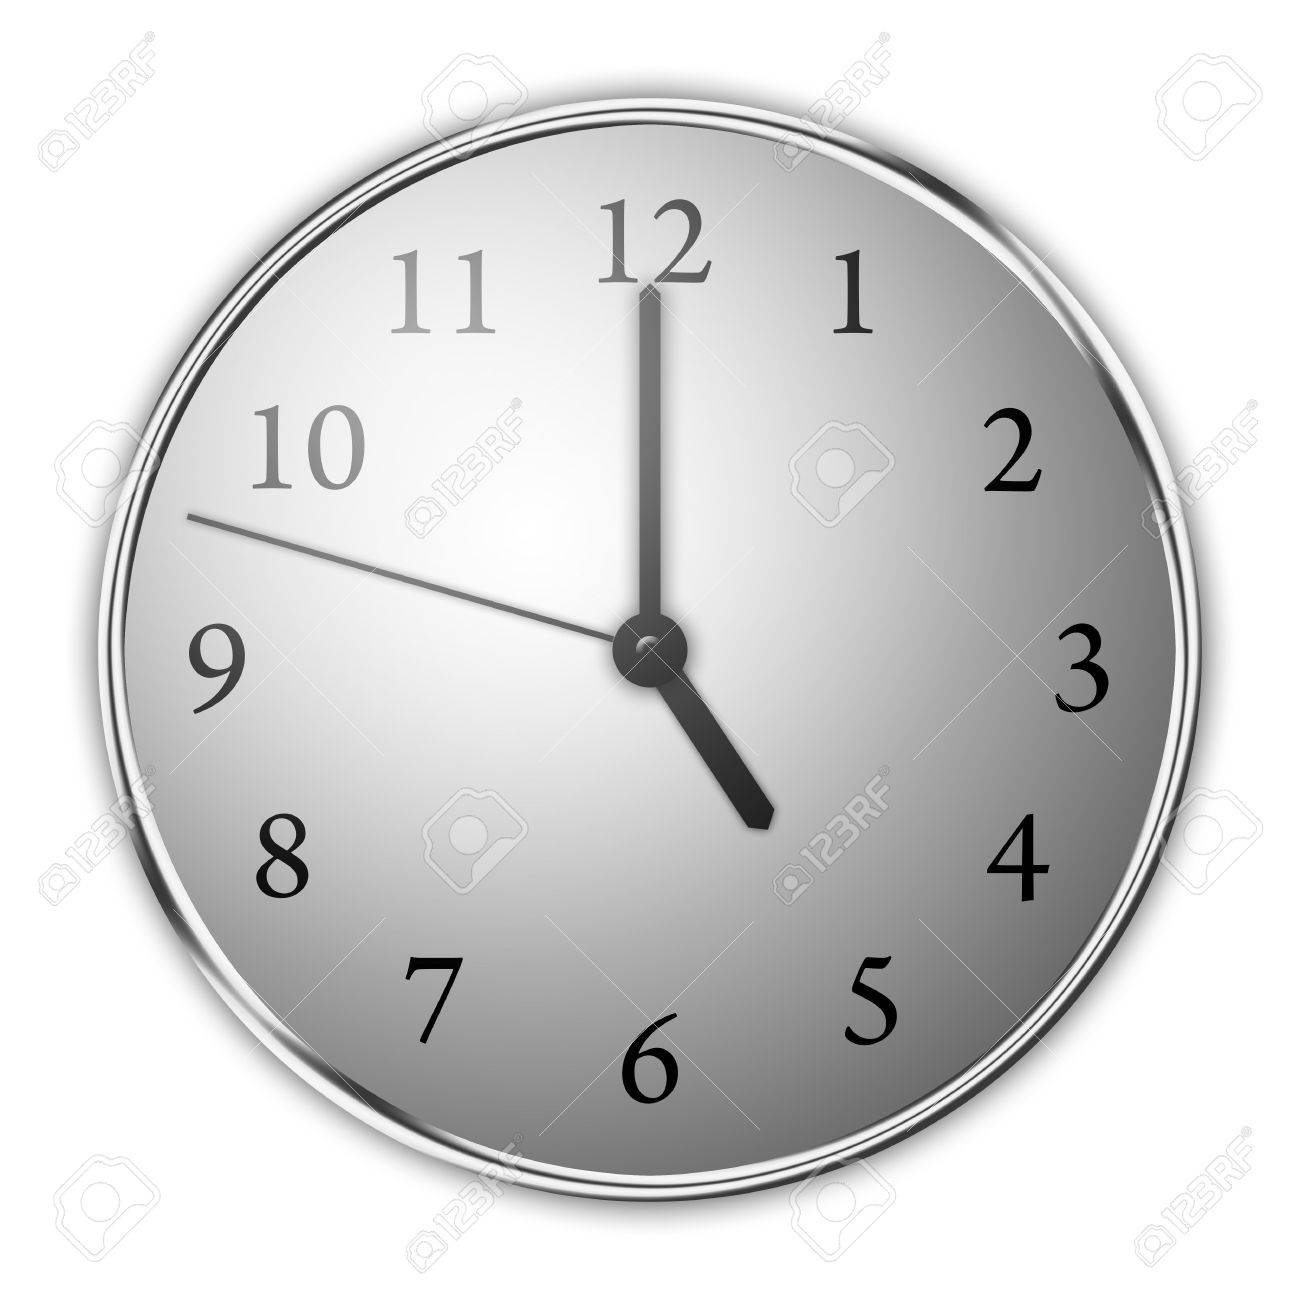 Clock on a white background showing close to five. Aluminum framing and dunamic lighting. Stock Photo - 5227025